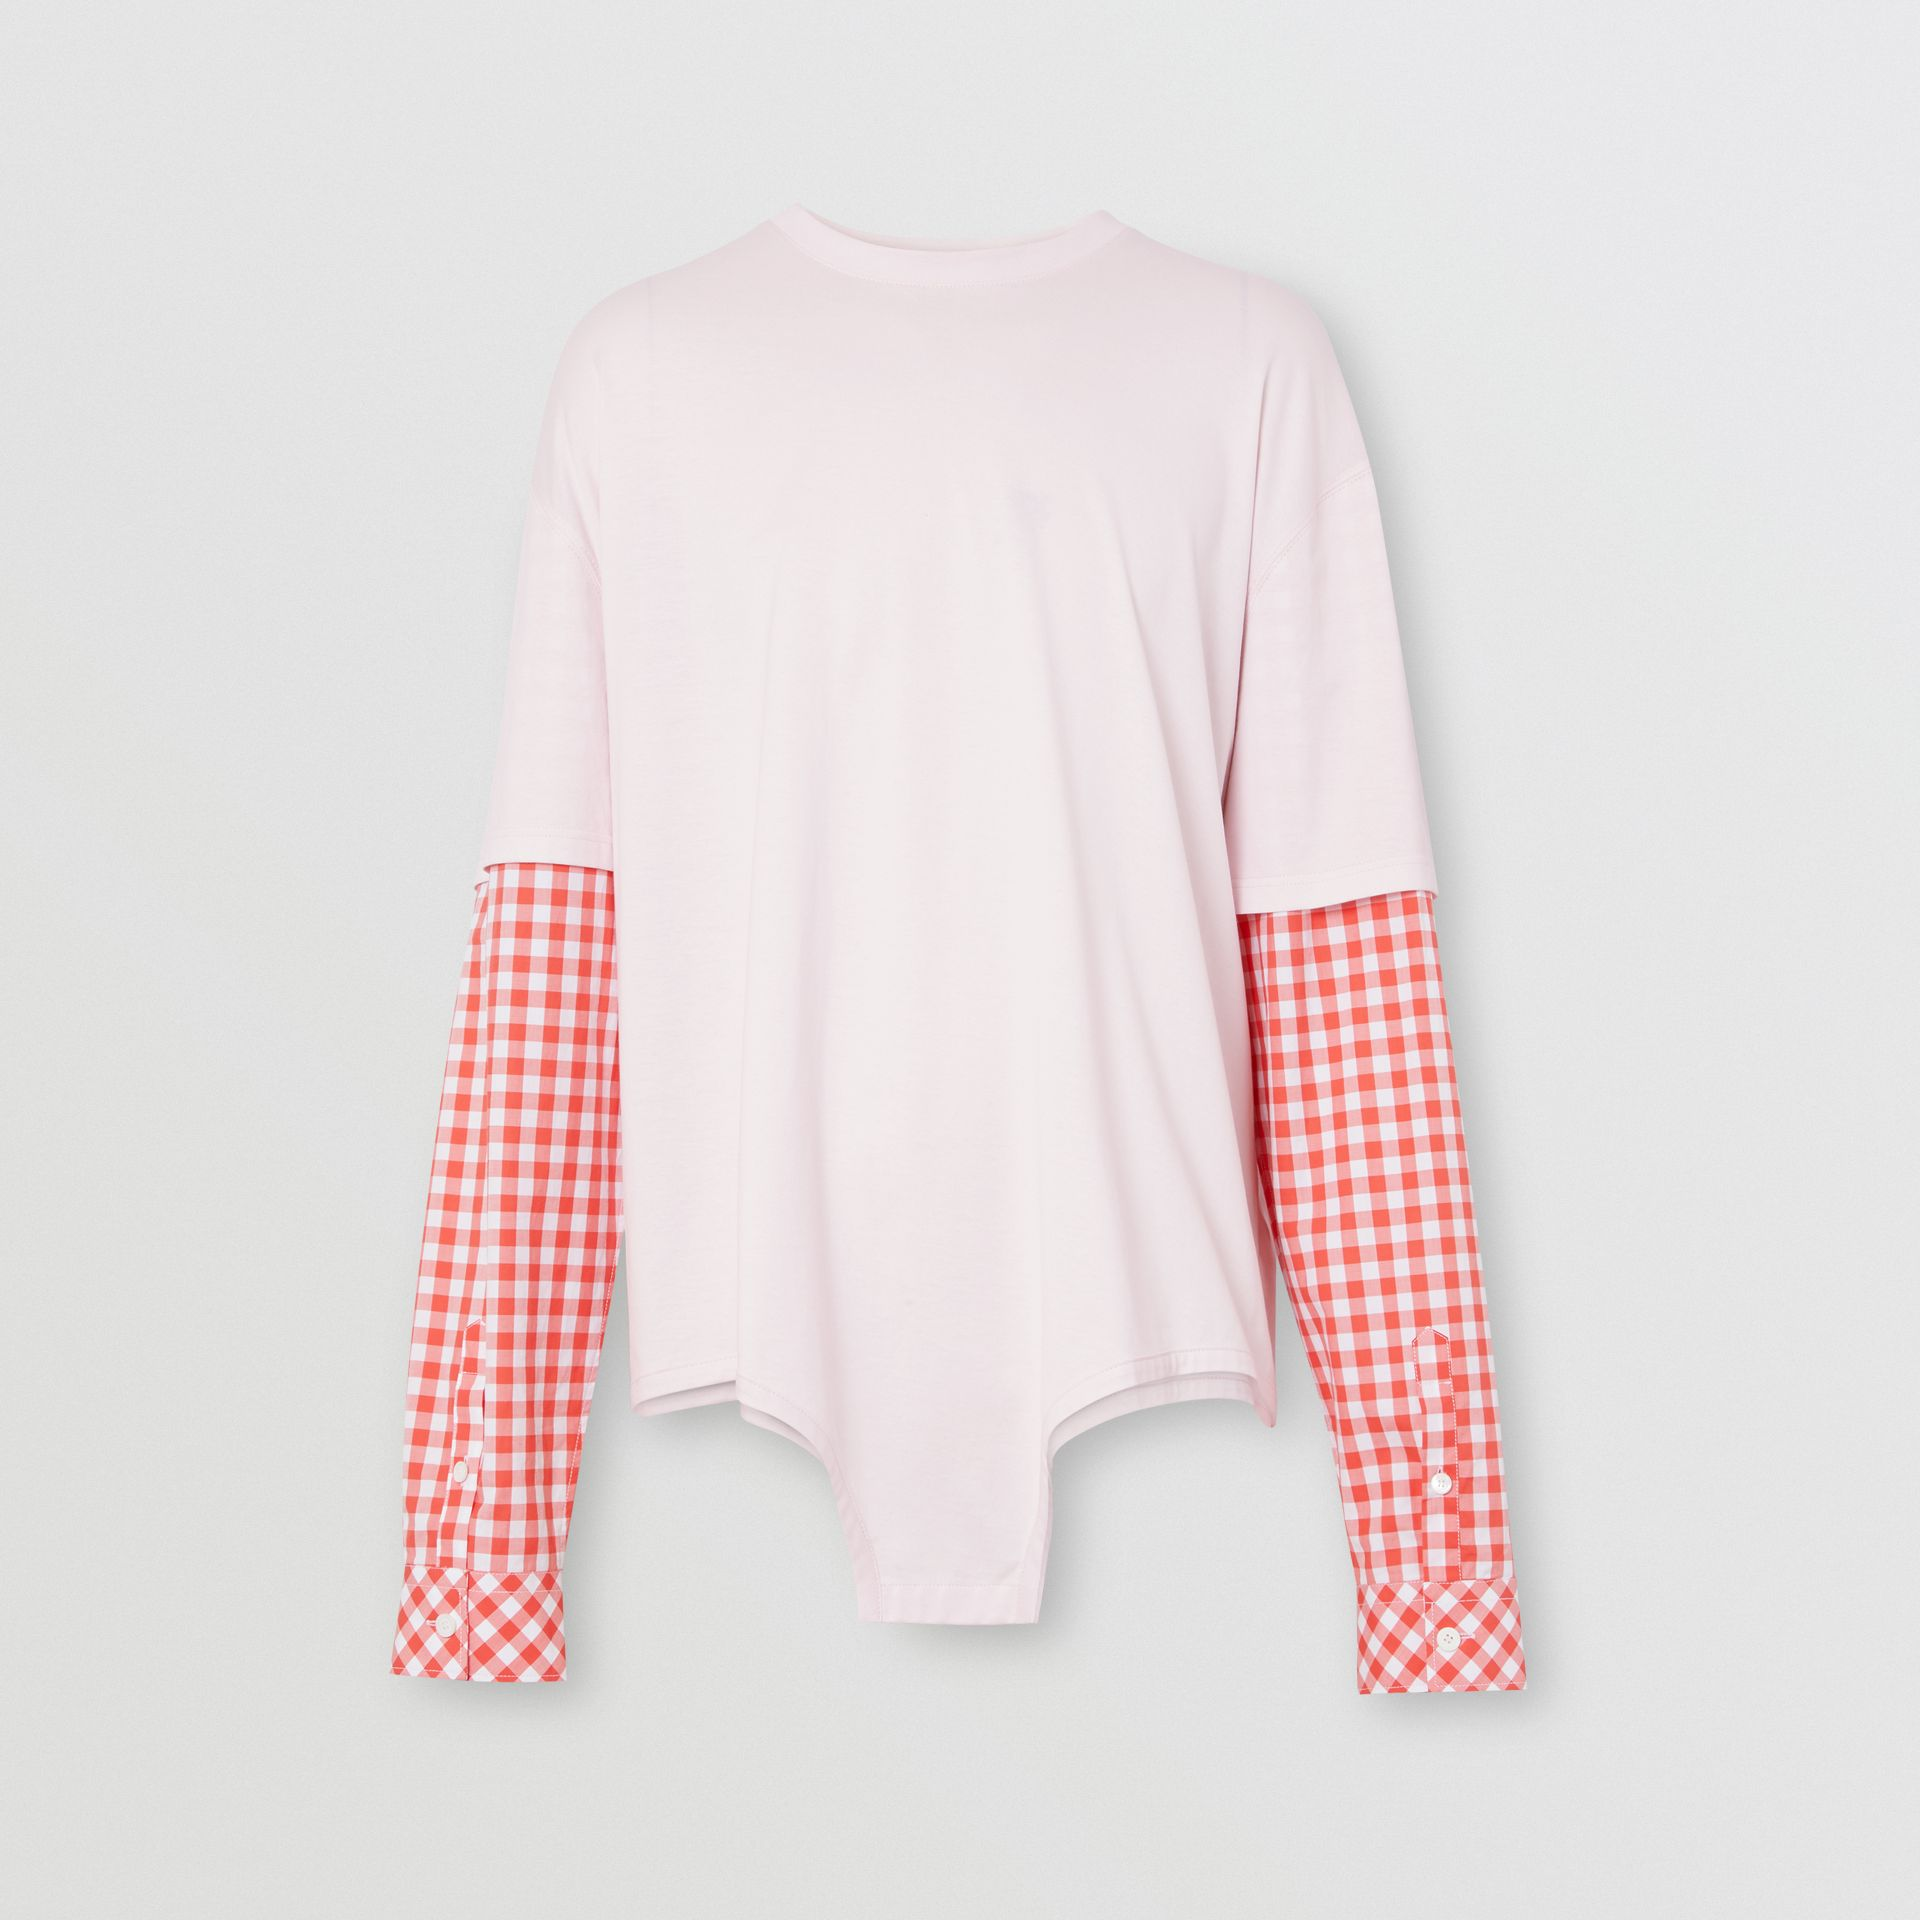 Gingham Sleeve Cut-out Hem Cotton Oversized T-shirt in Pale Pink | Burberry - gallery image 3